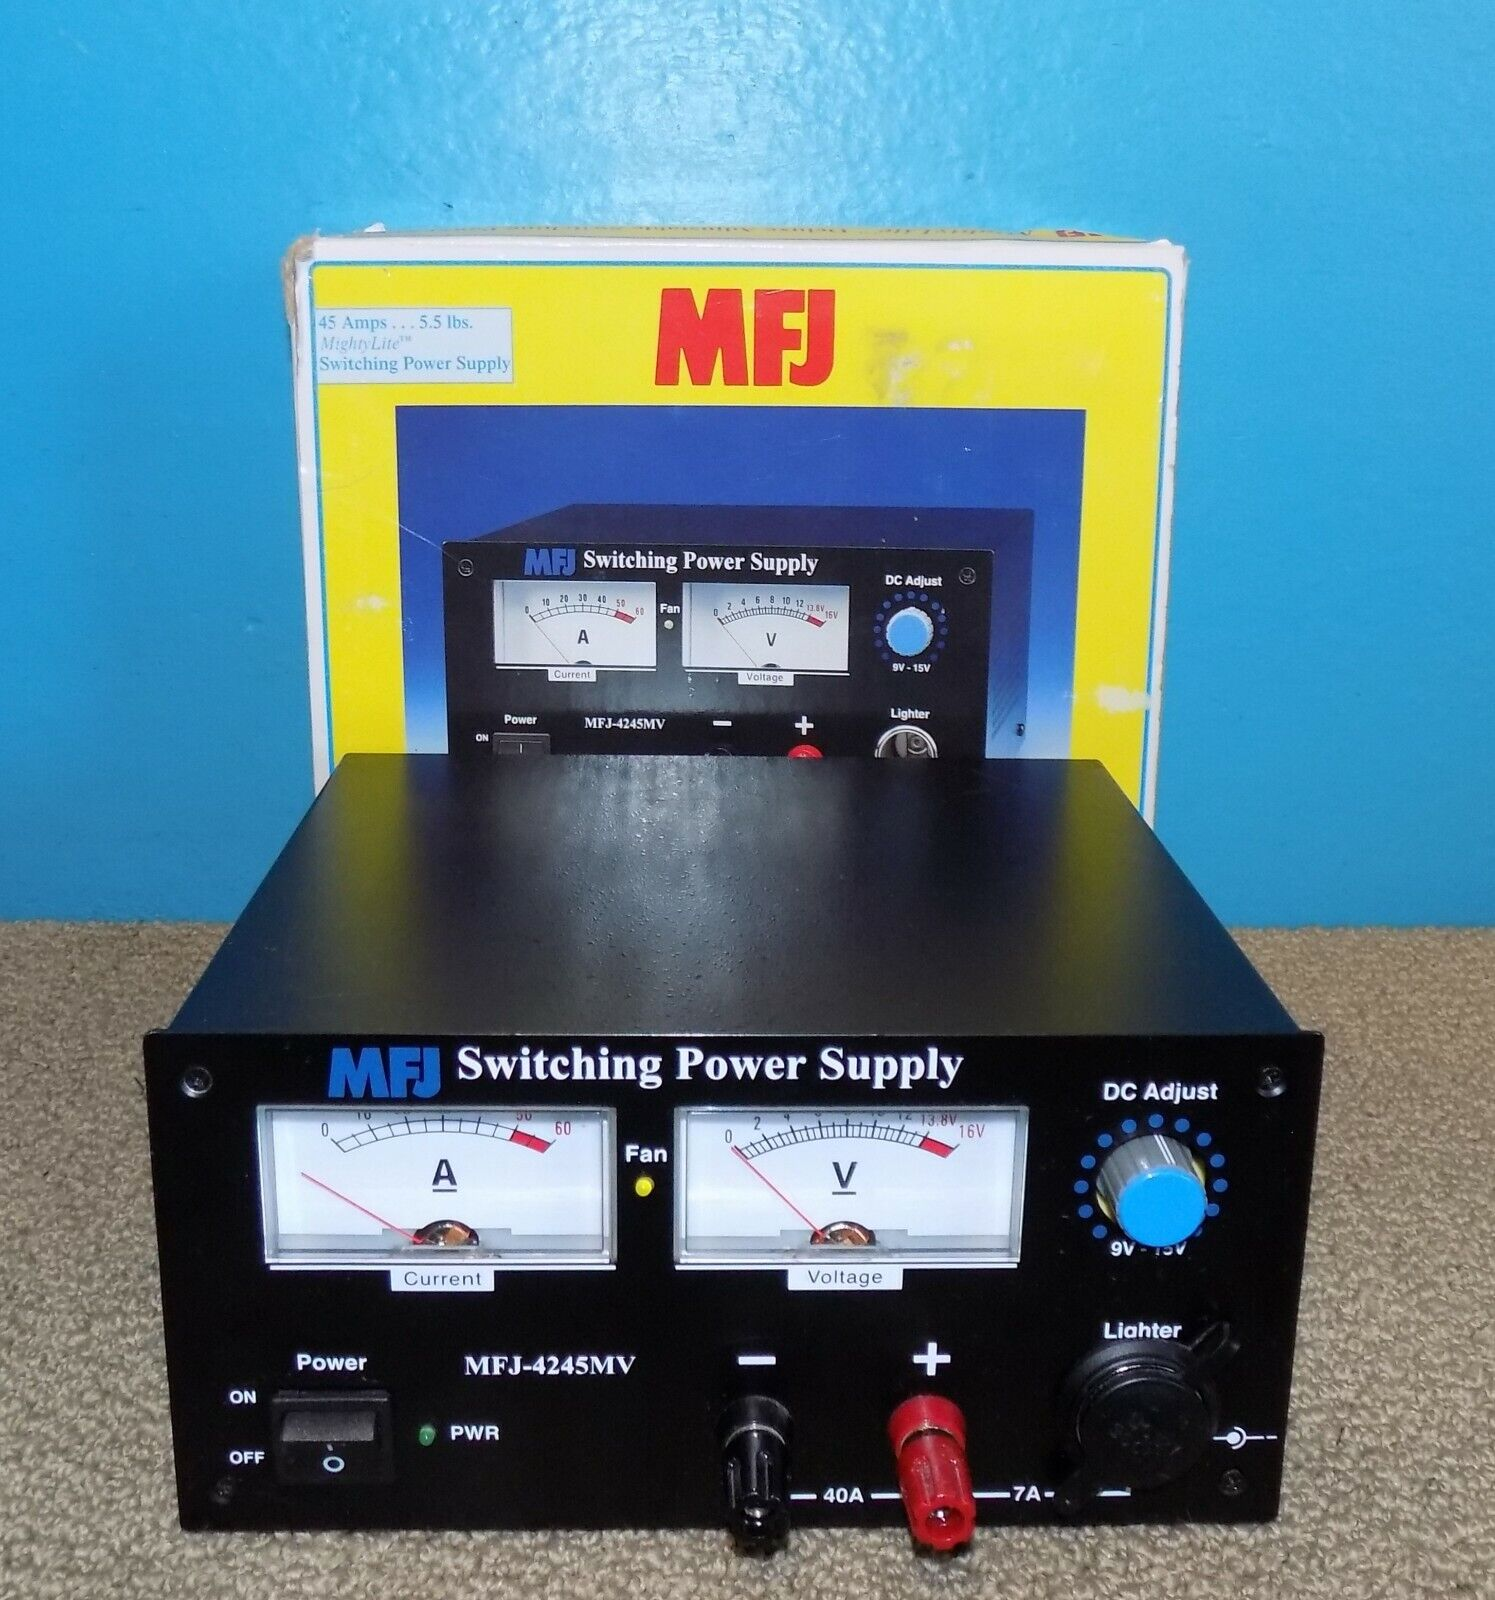 lilwing3 MFJ-4245MV MightyLite Adjustable Switching Power Supply 45Amps w/ Orig Box